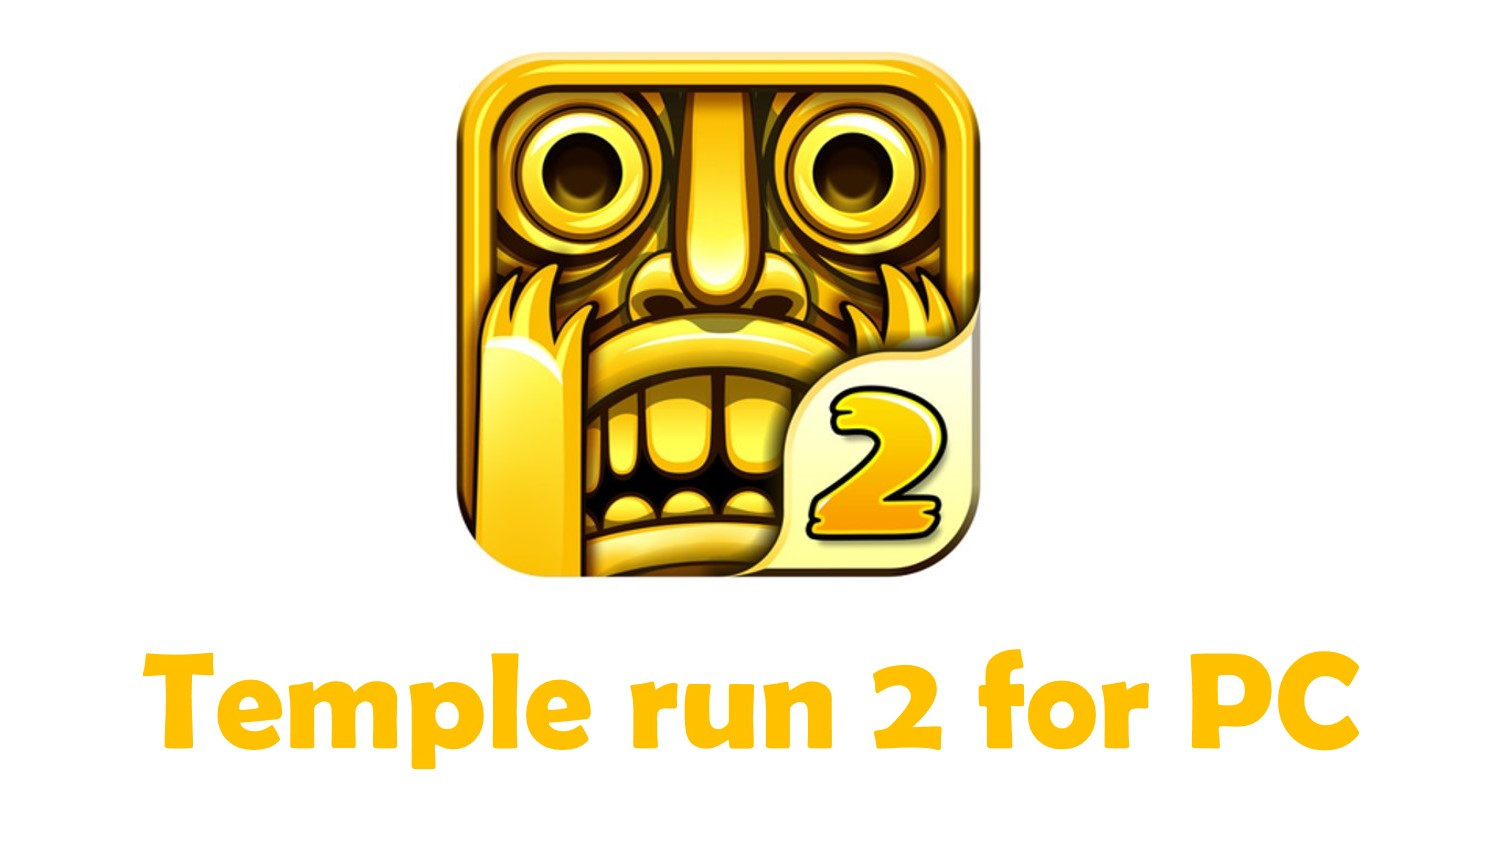 Temple run 2 for androidunlimited money v1 0 1 2unlimitedmoney apk androidandroidstuff cl